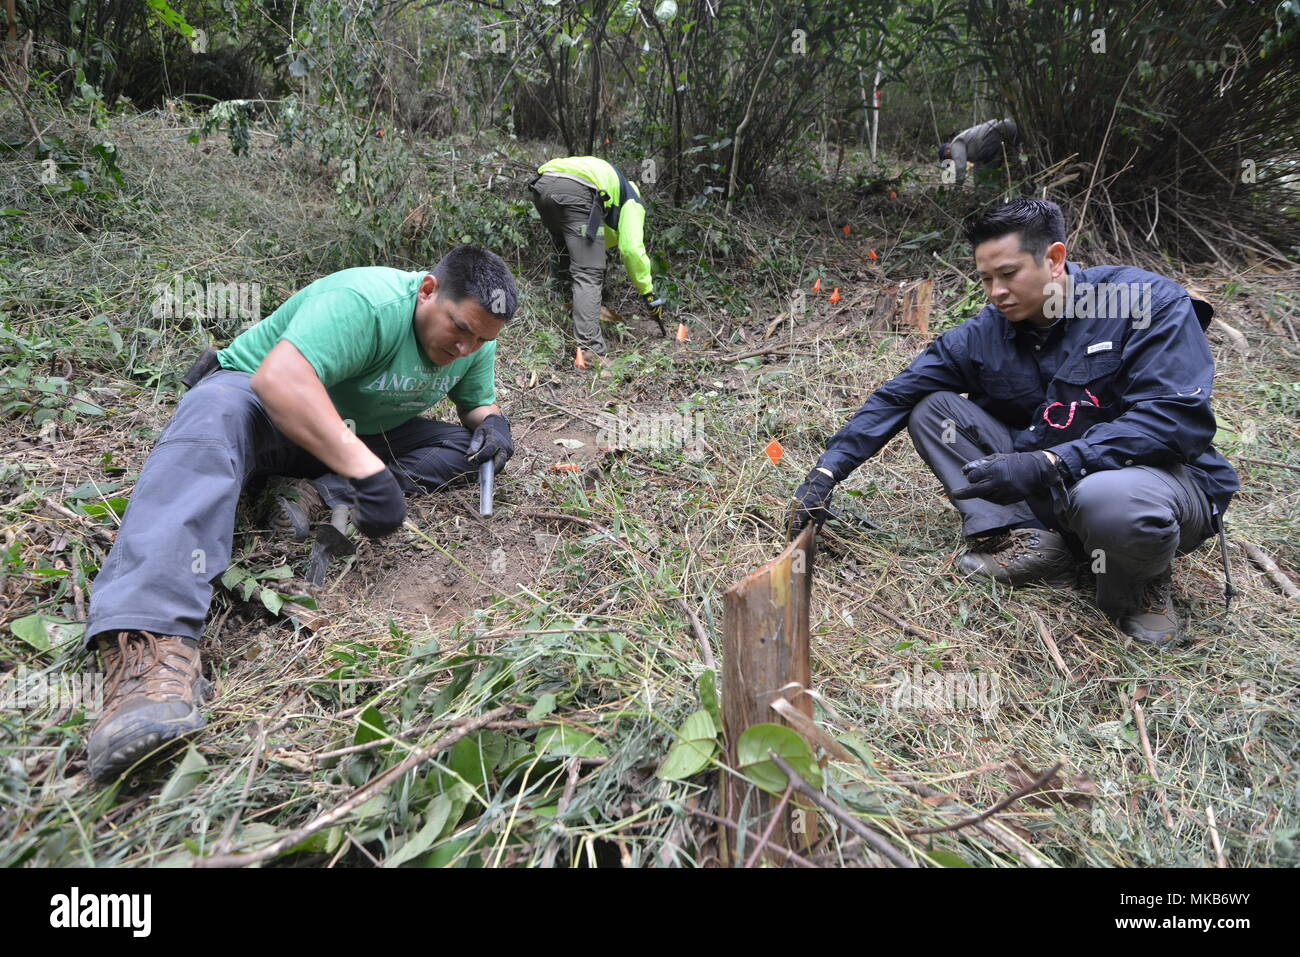 Medics of the forest: which representatives of the animal world clean the nature 74